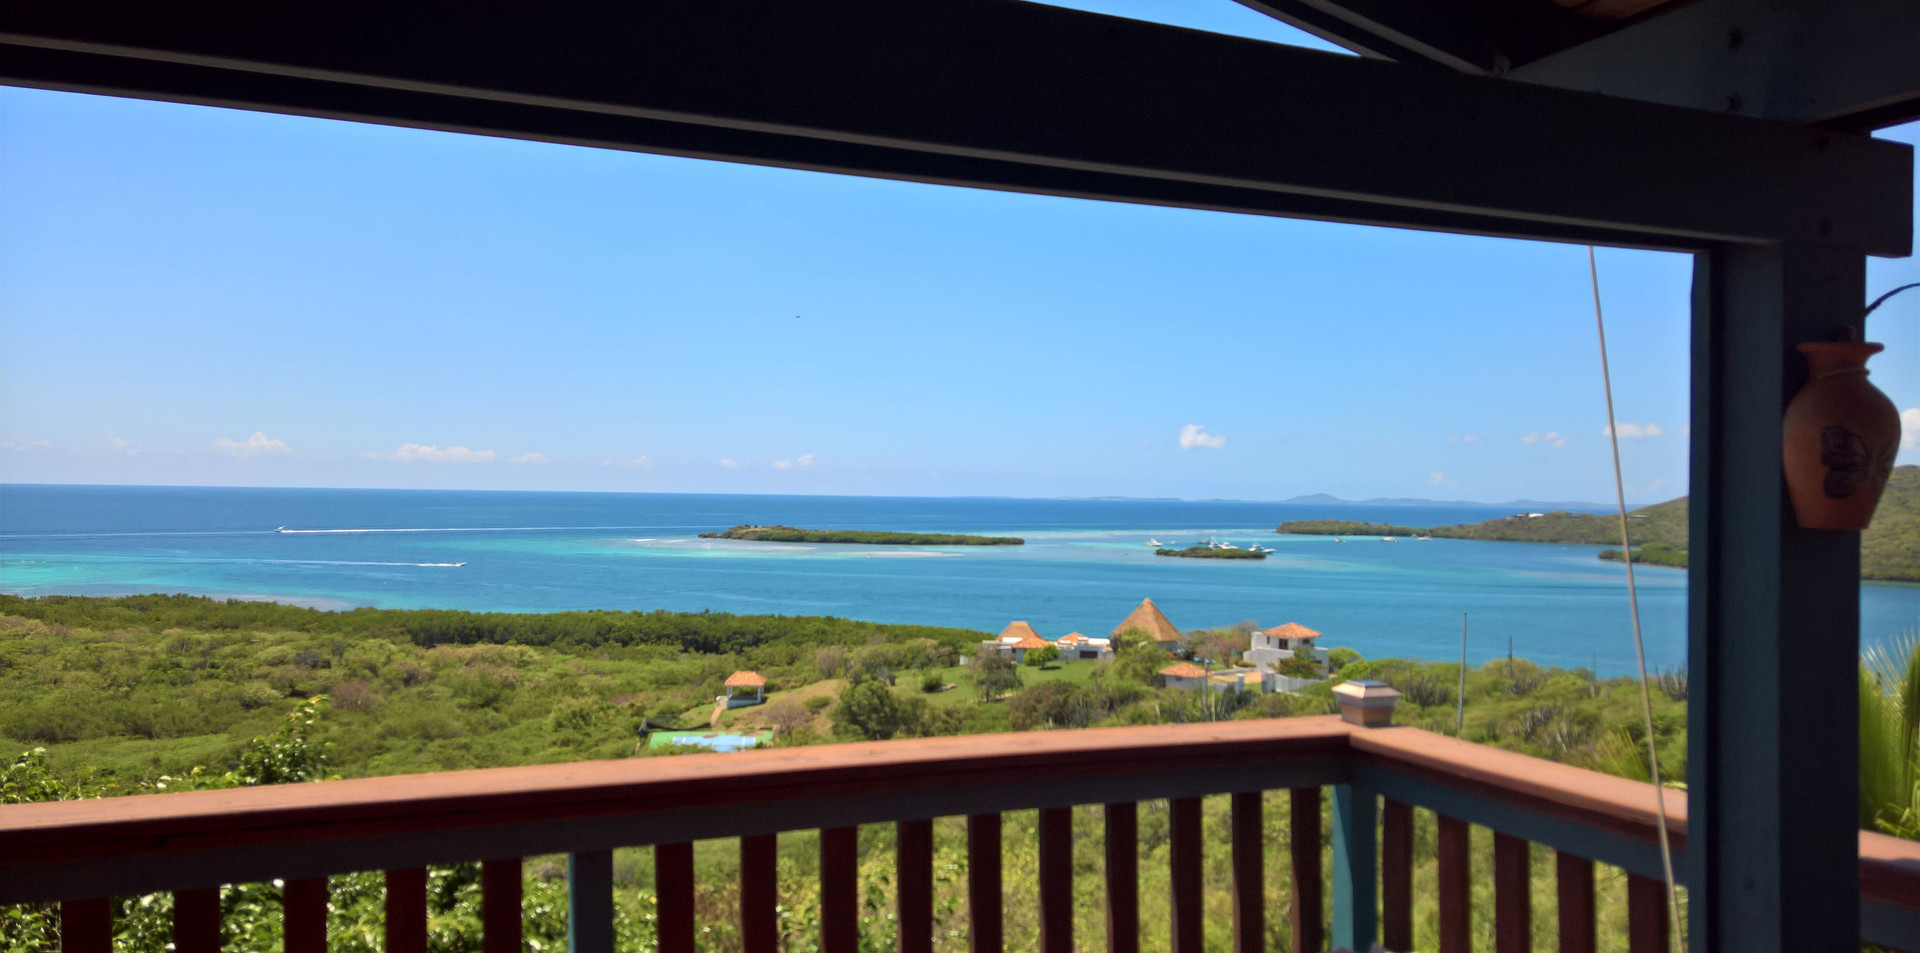 View to Vieques and Manglar Bay